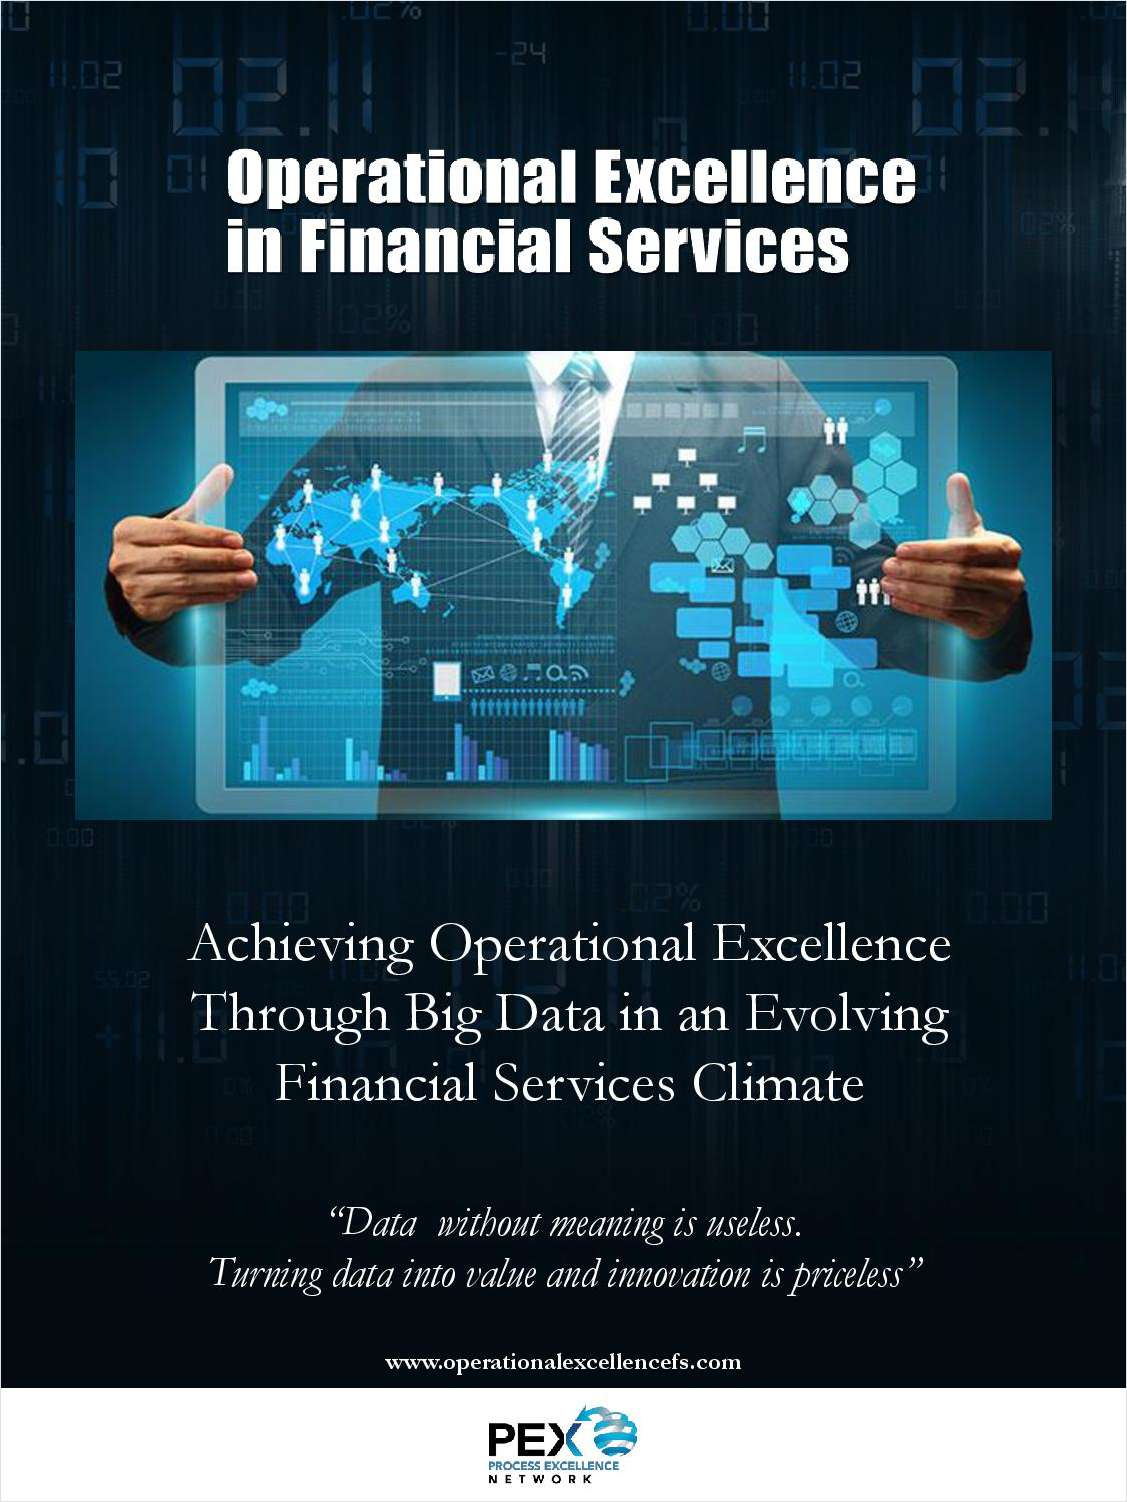 Achieving Operational Excellence Through Big Data in an Evolving Financial Services Climate